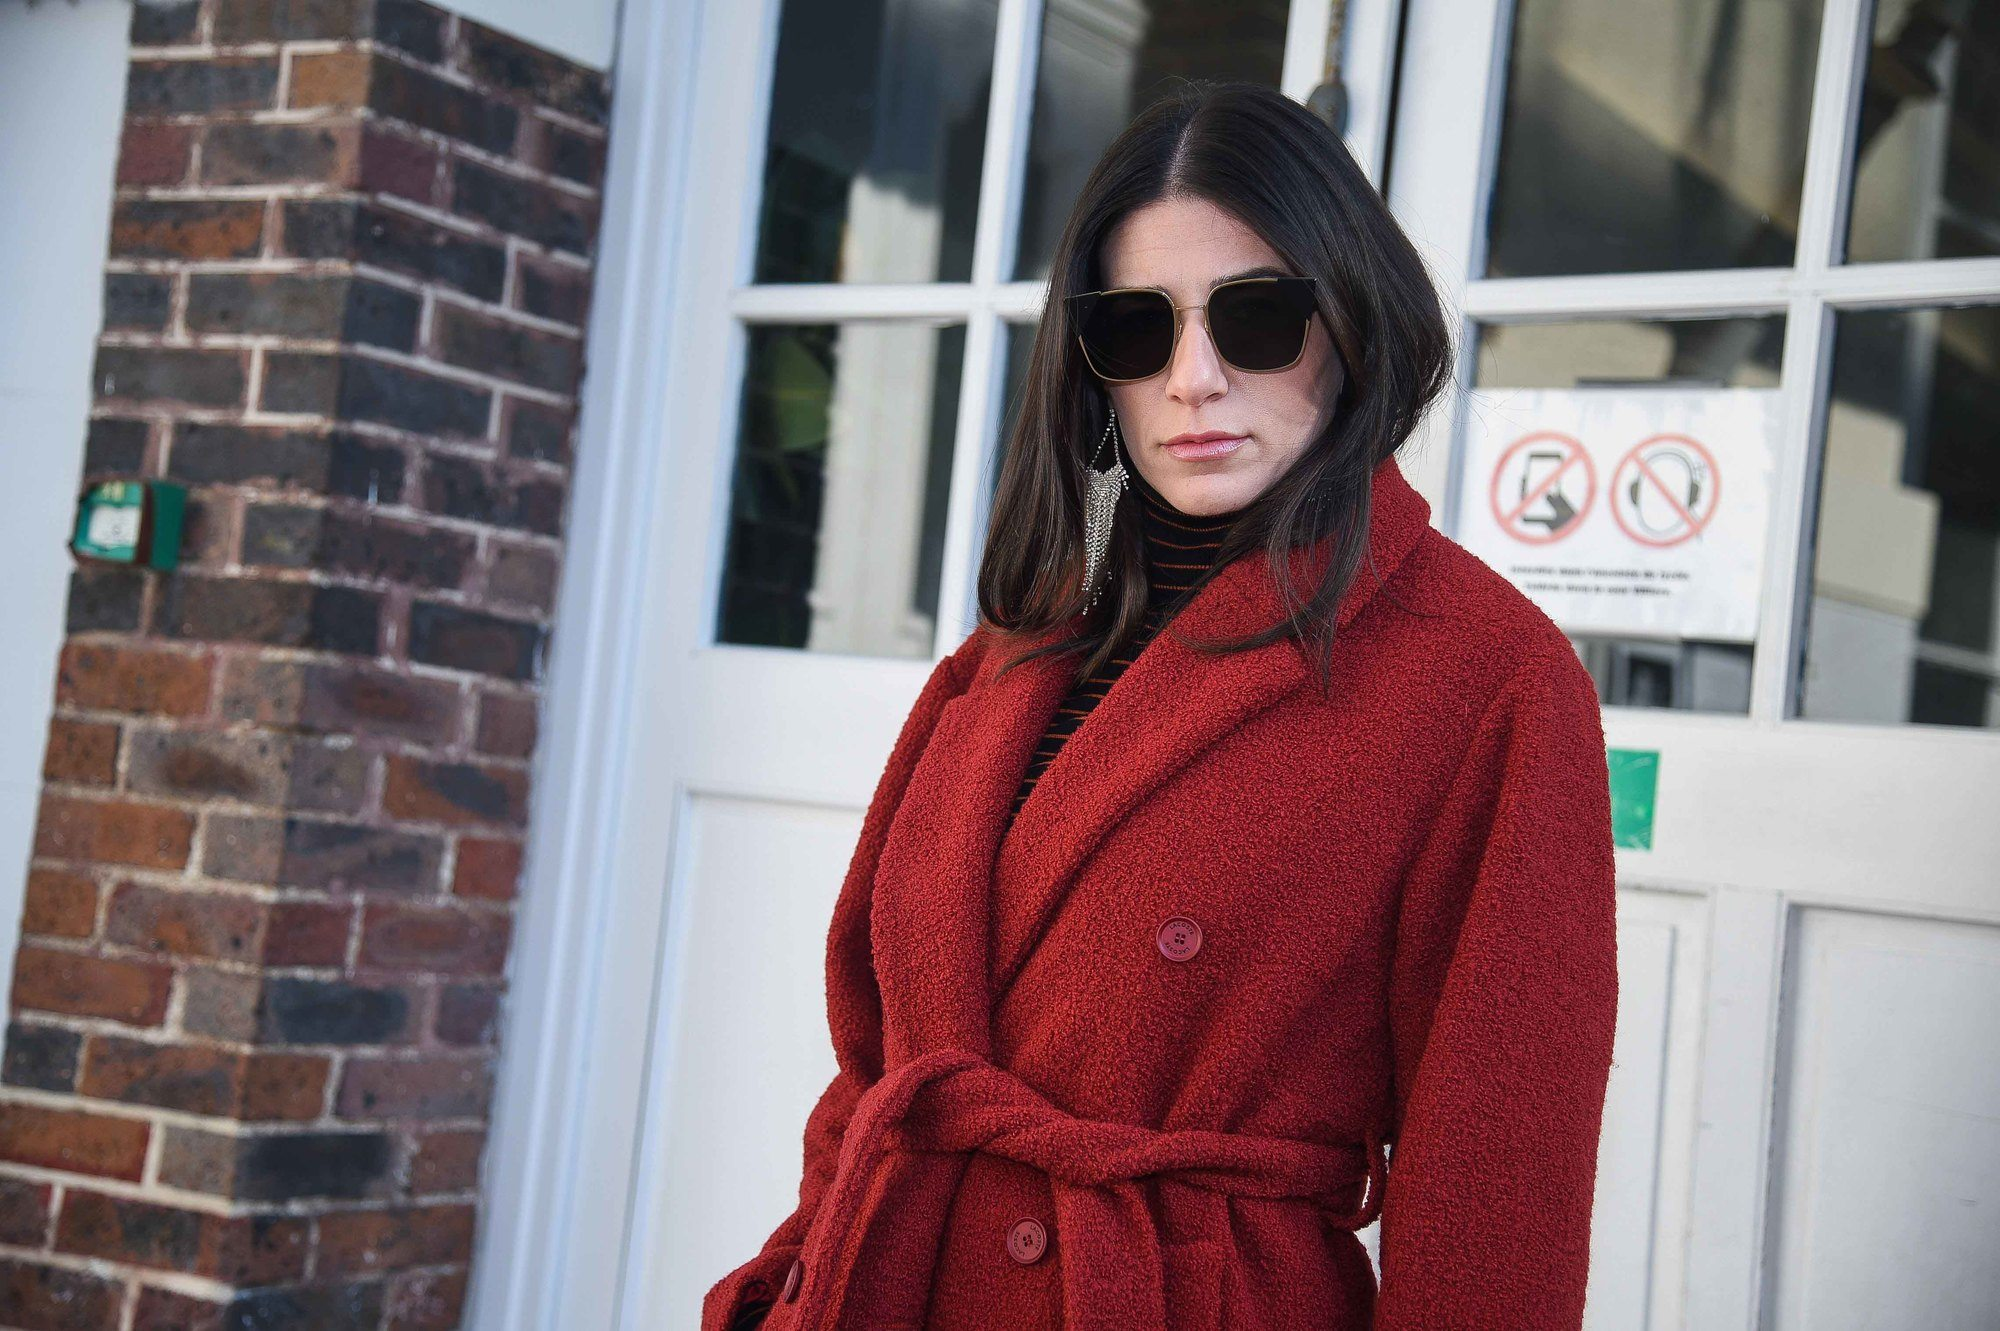 brunette street style model with sleek bob hair wearing a red tie coat